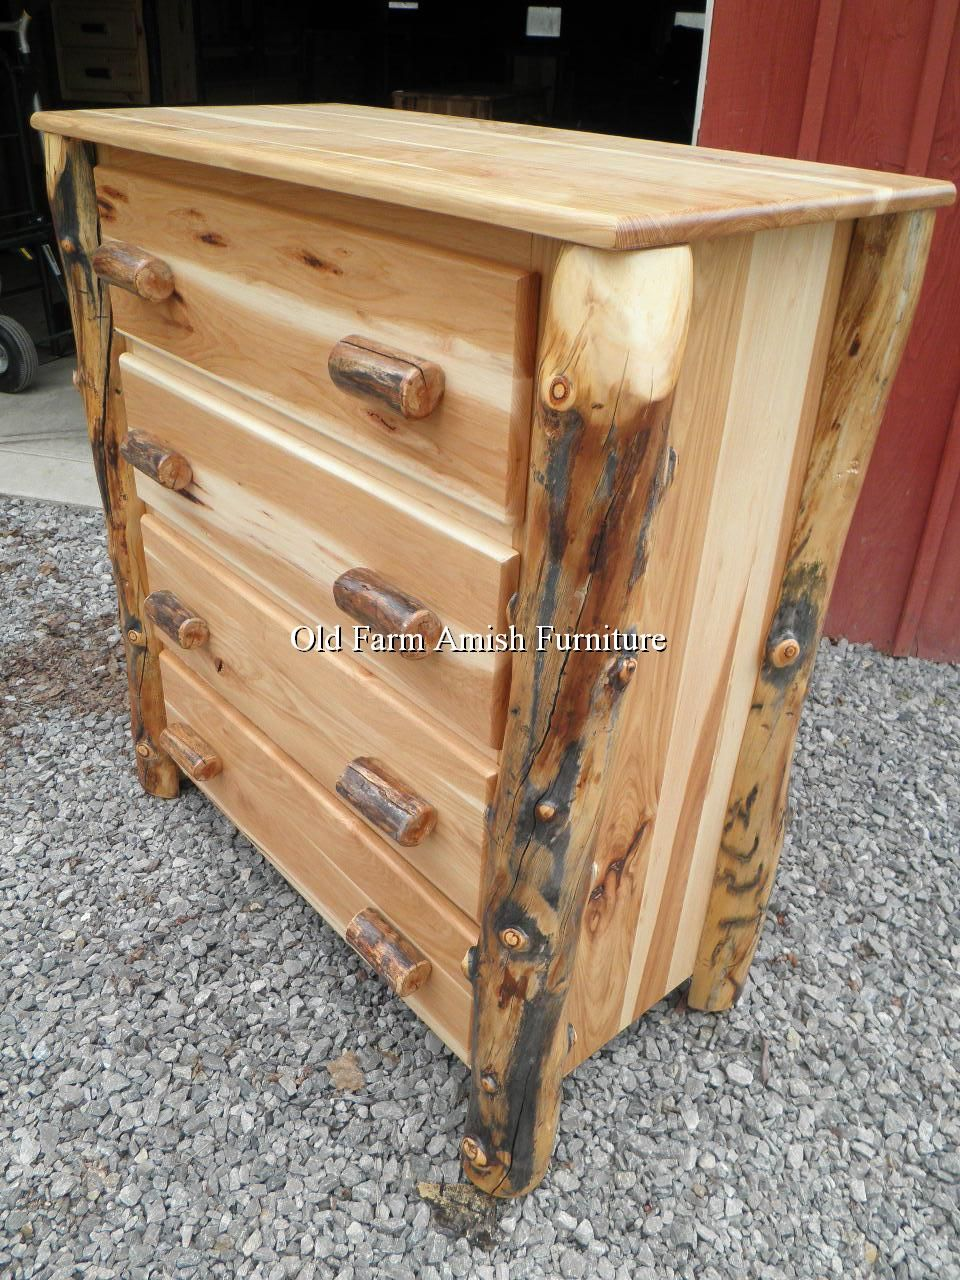 Aspen Log 4 Drawer Chest Of Drawers Old Farm Amish Furniture Dayton Pa 814 257 8911 Oldfarmfurniture Aol Visit Our Facebook Page